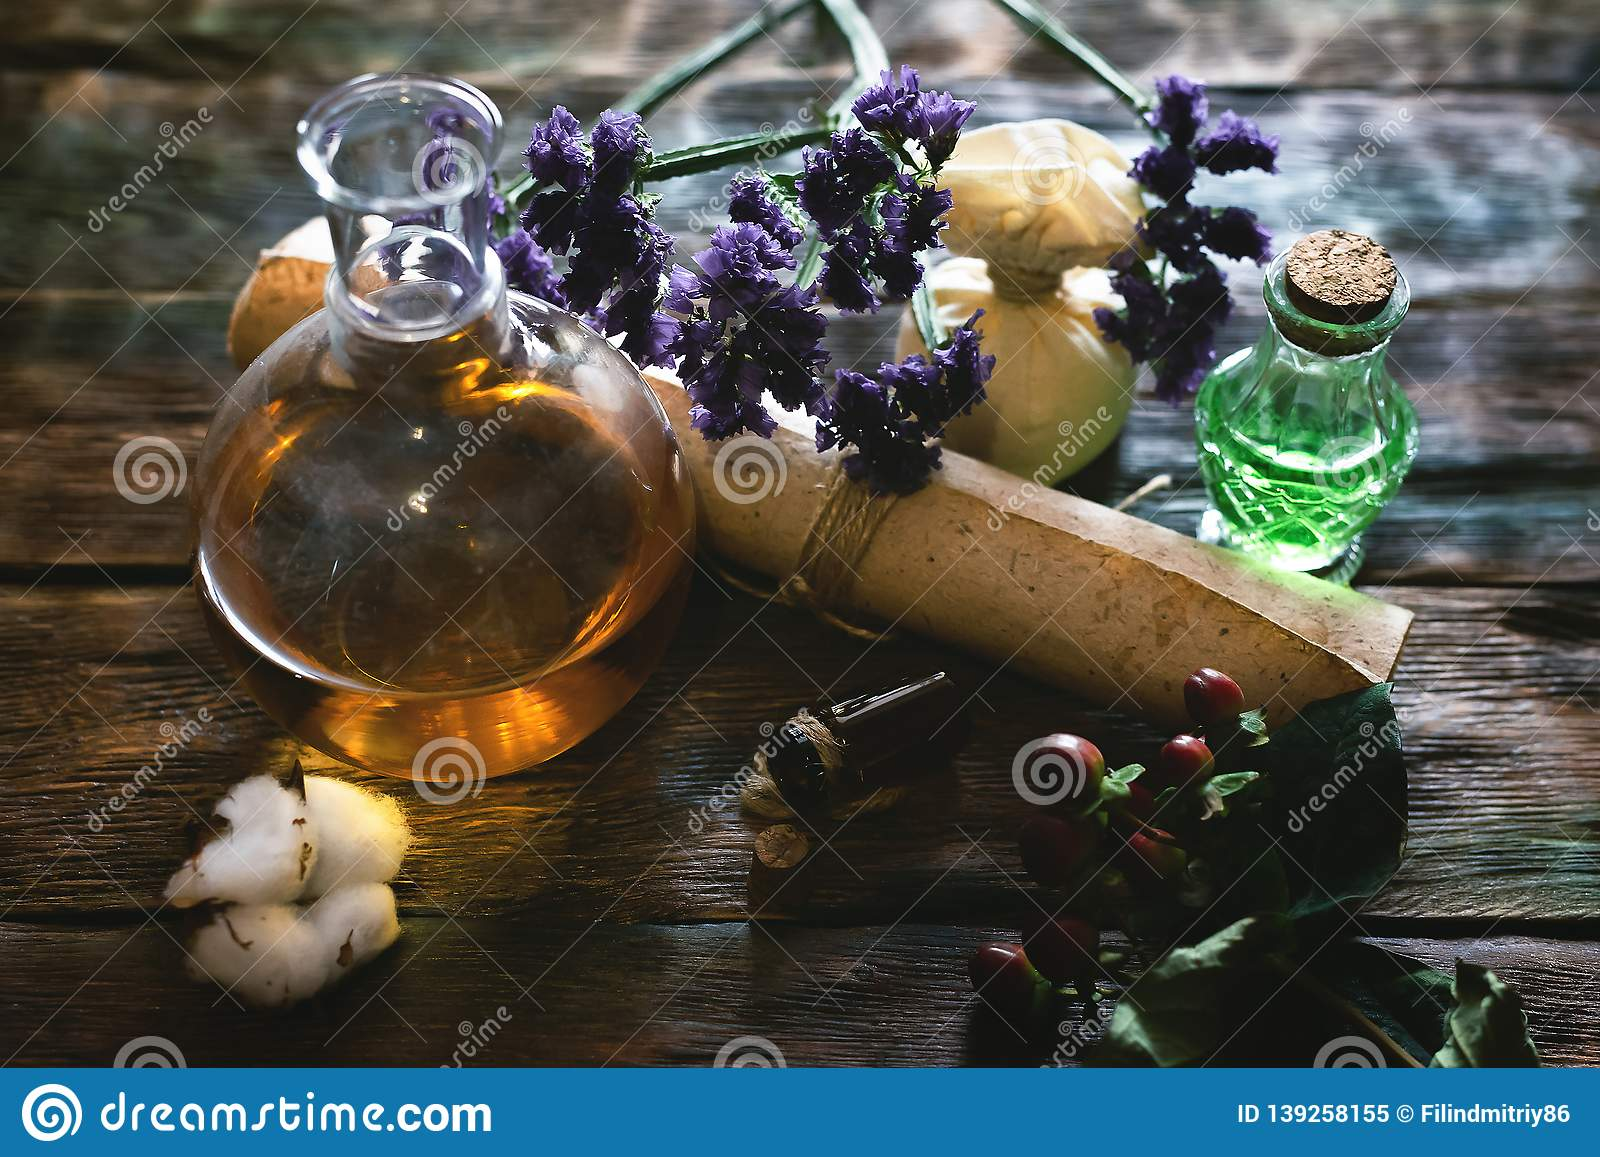 Witch doctor  stock image  Image of healer, druid, herbal